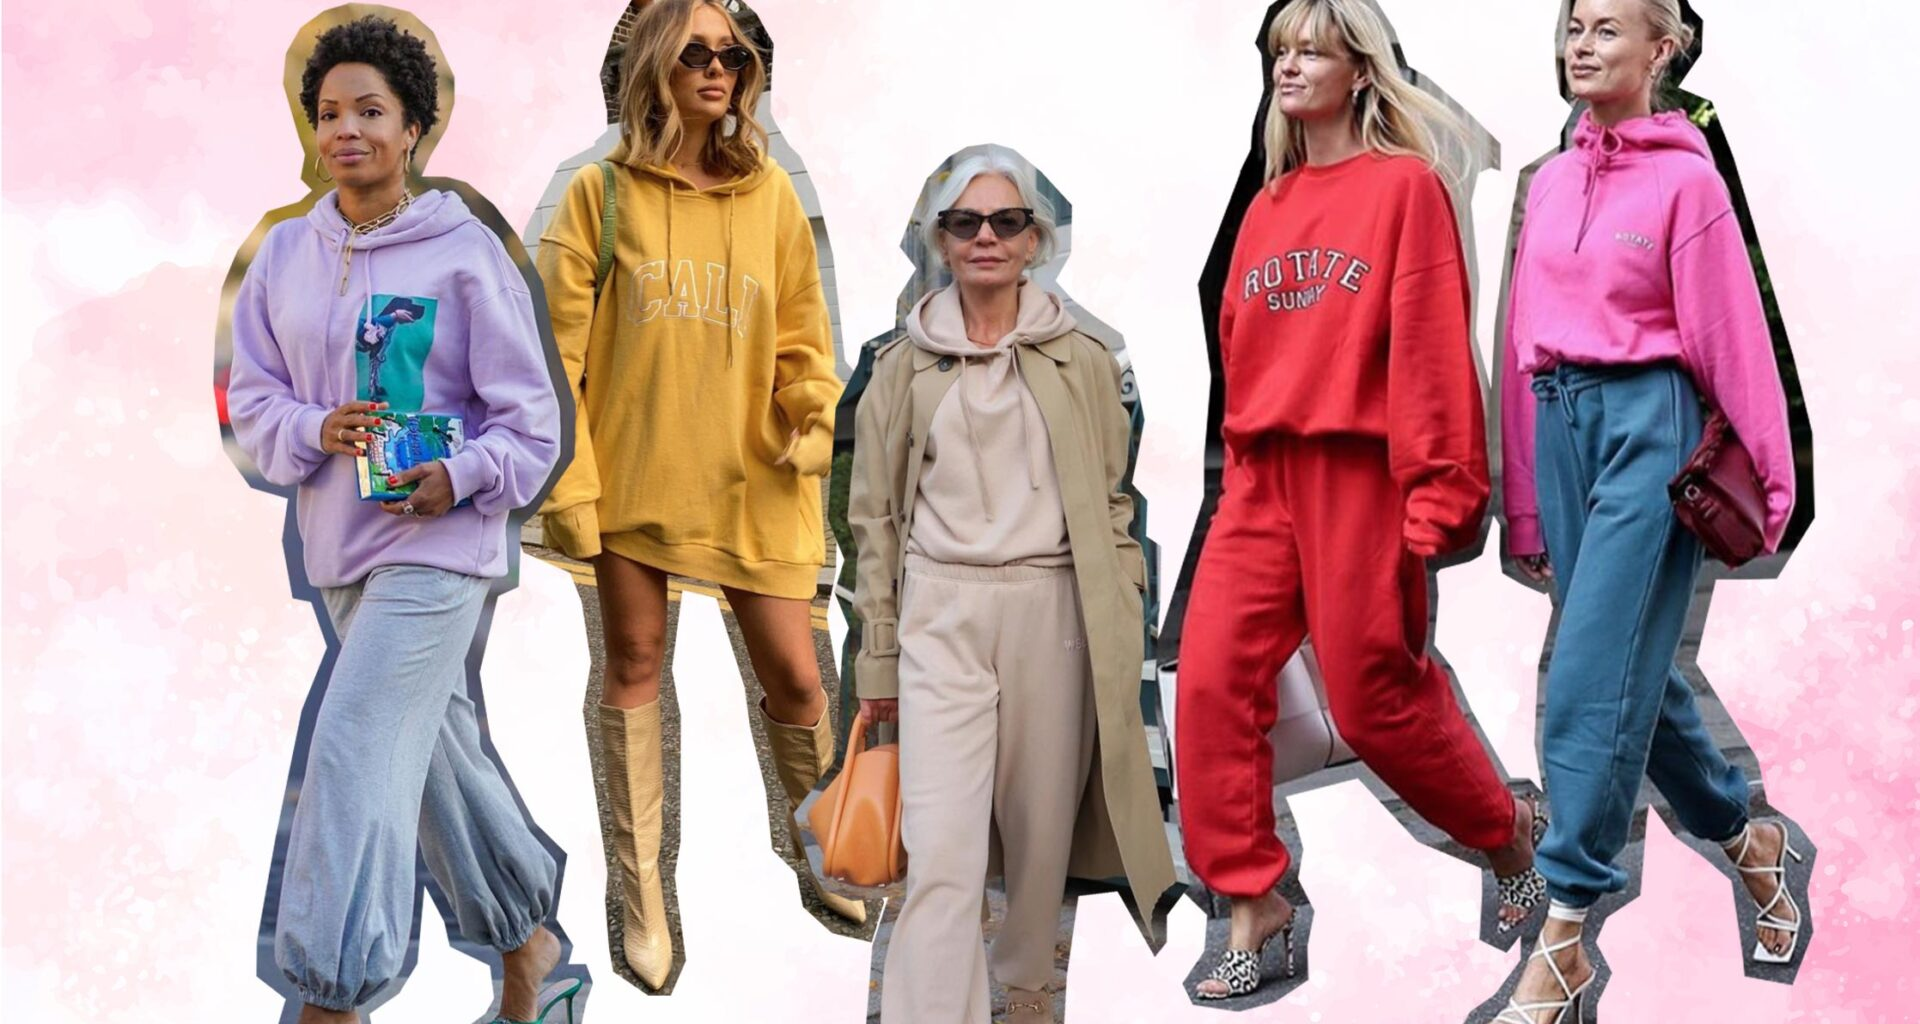 casual dress up sweatpants loungewear street style outfit womens